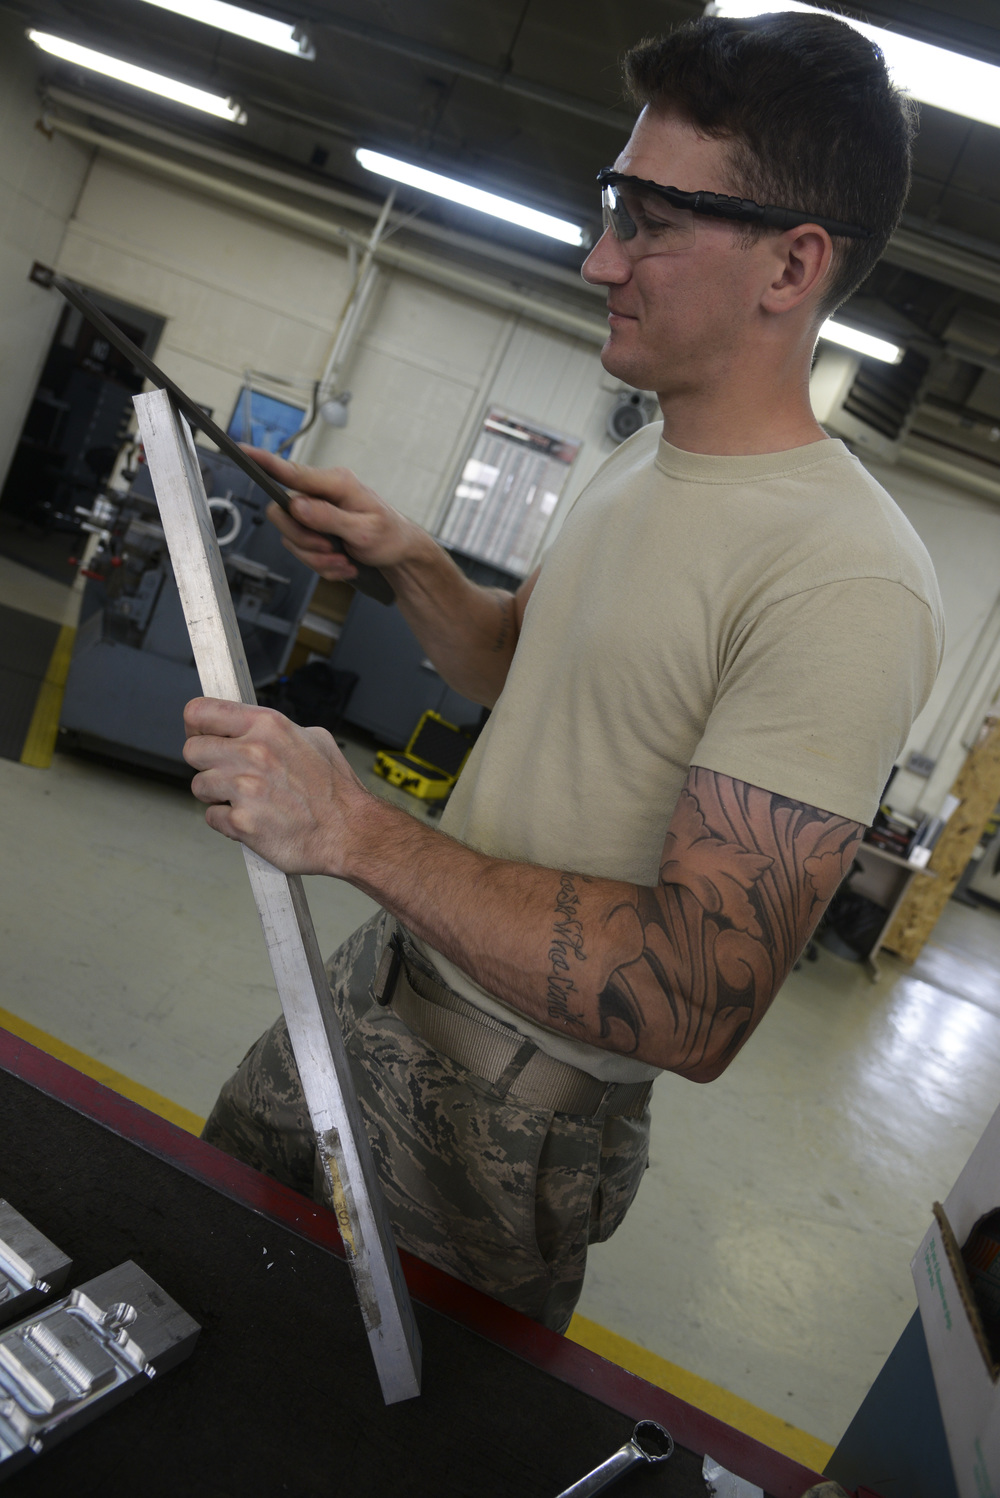 Senior Airman Justin Weeks, 374th Maintenance Squadron aircraft metals technology journeyman, smoothens the edge of a metal piece in the fabrication shop at Yokota Air Base, Japan, June 23, 2015. The shop often receives C-130 Hercules exhaust pipes to repair utilizing the technicians' grinding and welding skills. (U.S. Air Force photo by Senior Airman David Owsianka/Released)